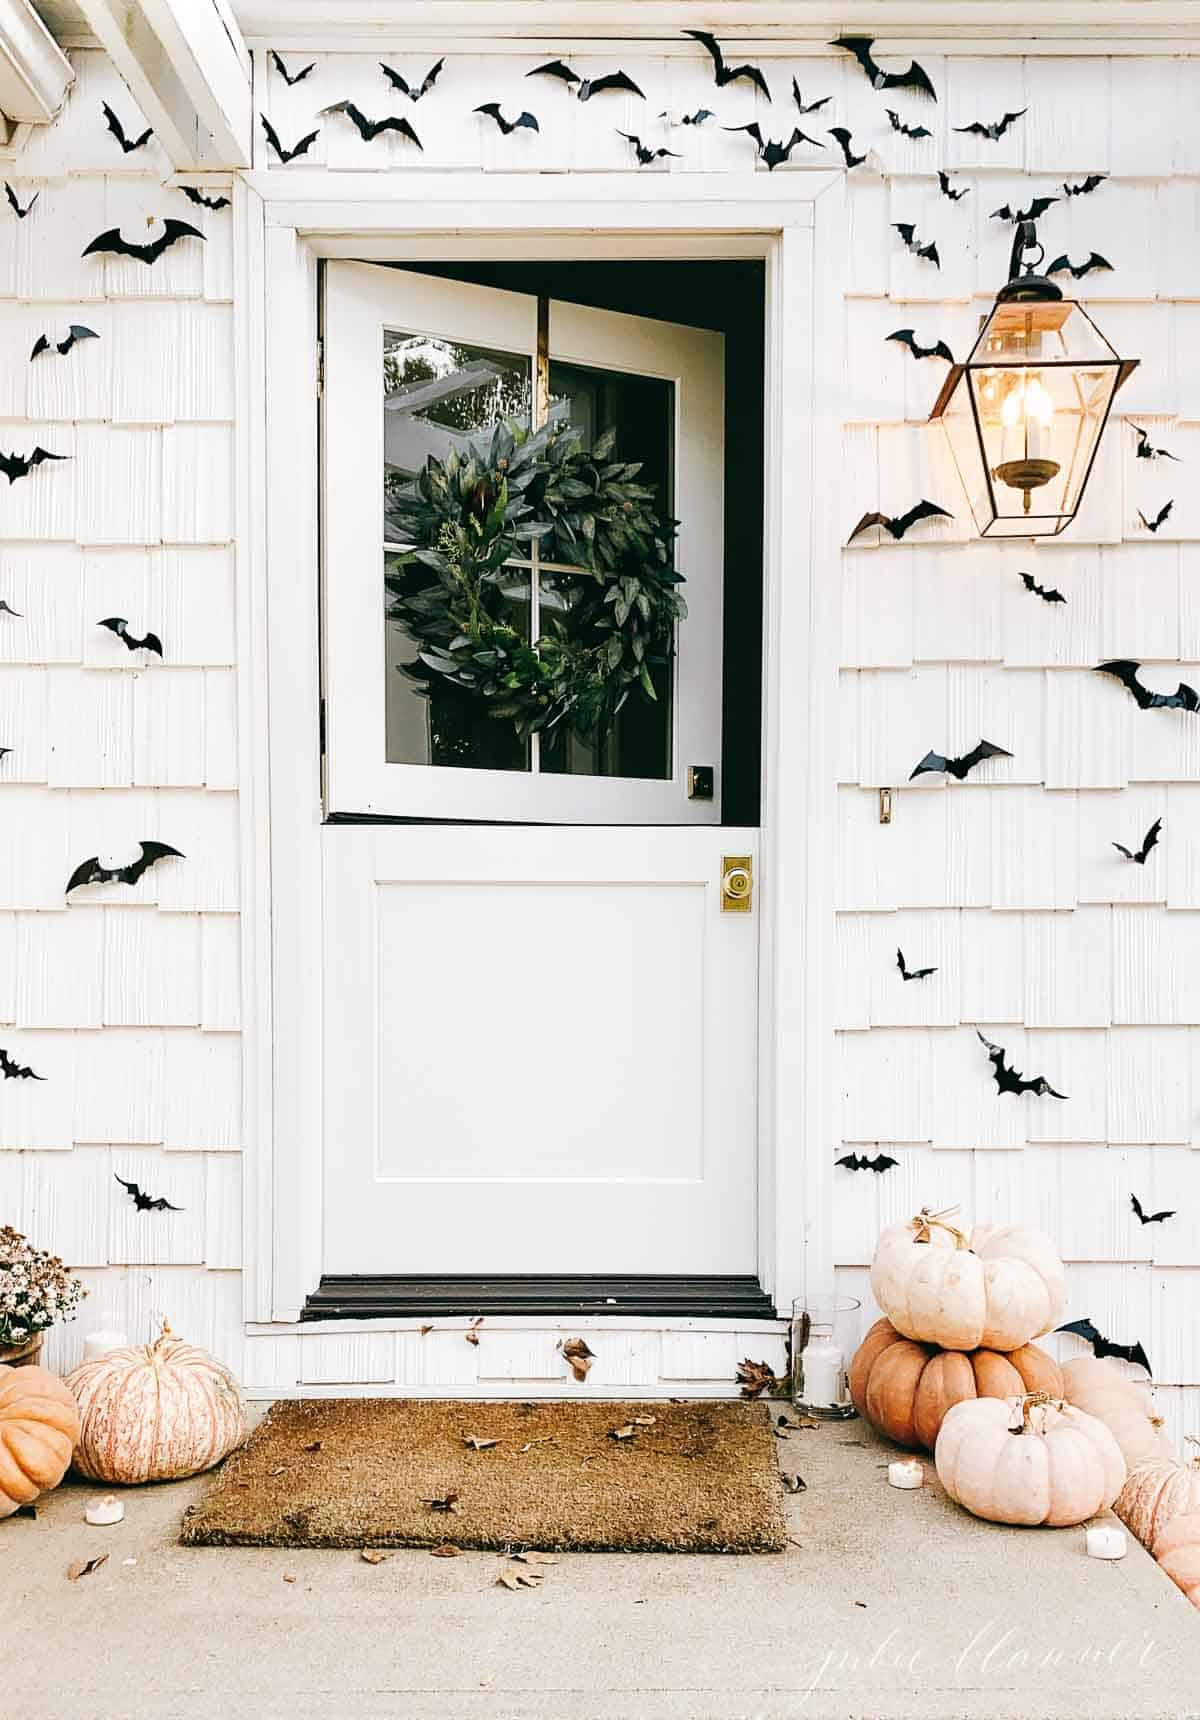 dutch door surrounded by black bats and pumpkins